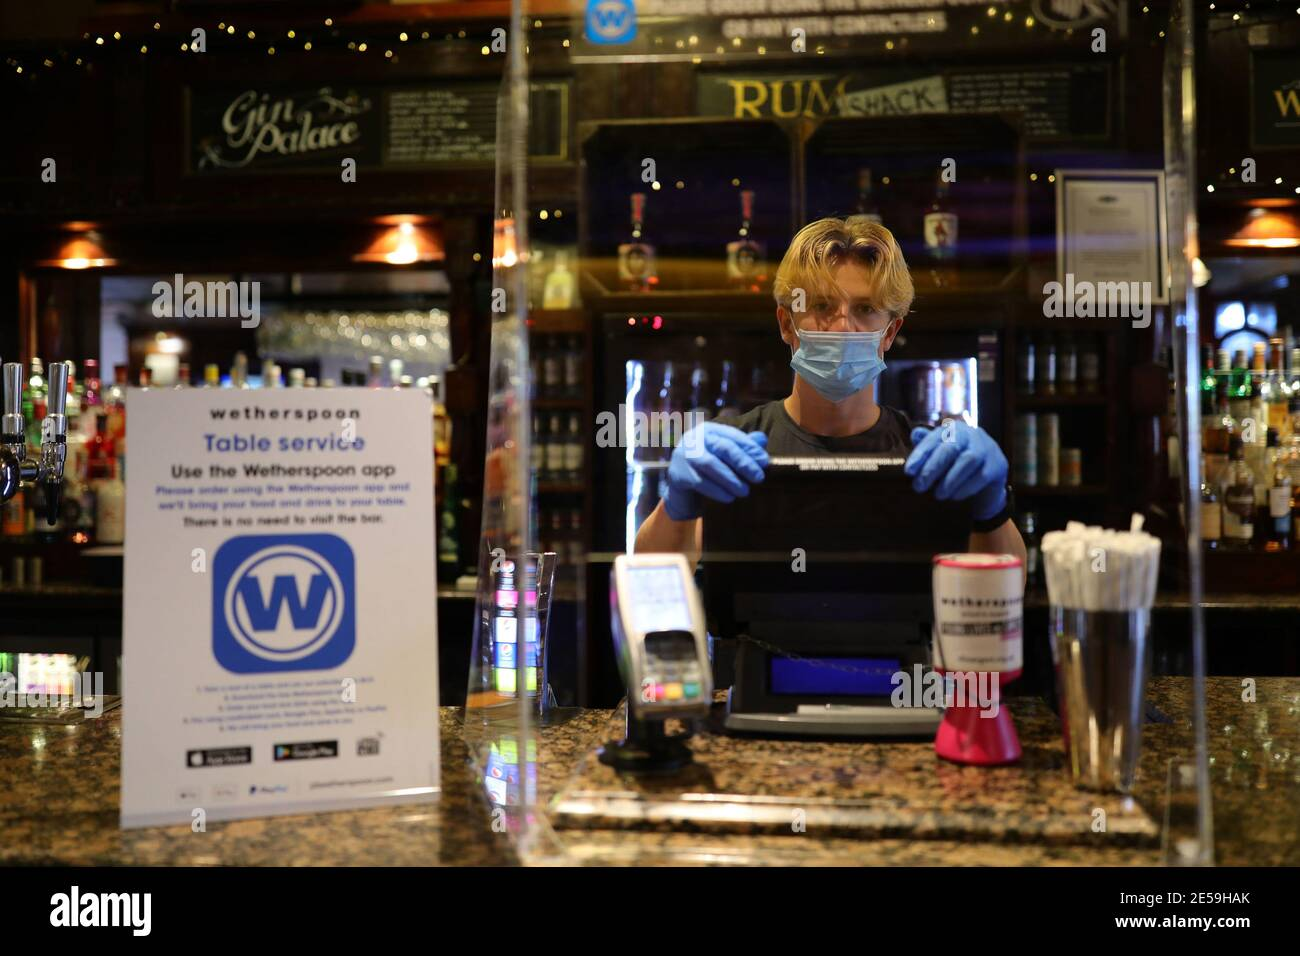 File photo dated 04/07/2020 of member of staff in PPE waiting to serve drinkers at the reopening of Wetherspoons' Toll Gate pub, in Hornsey, north London, as the coronavirus lockdown restrictions were eased across England. Saturday January 30 marks the one year anniversary of the earliest known death from coronavirus in UK. Issue date: Wednesday January 27, 2021. Stock Photo